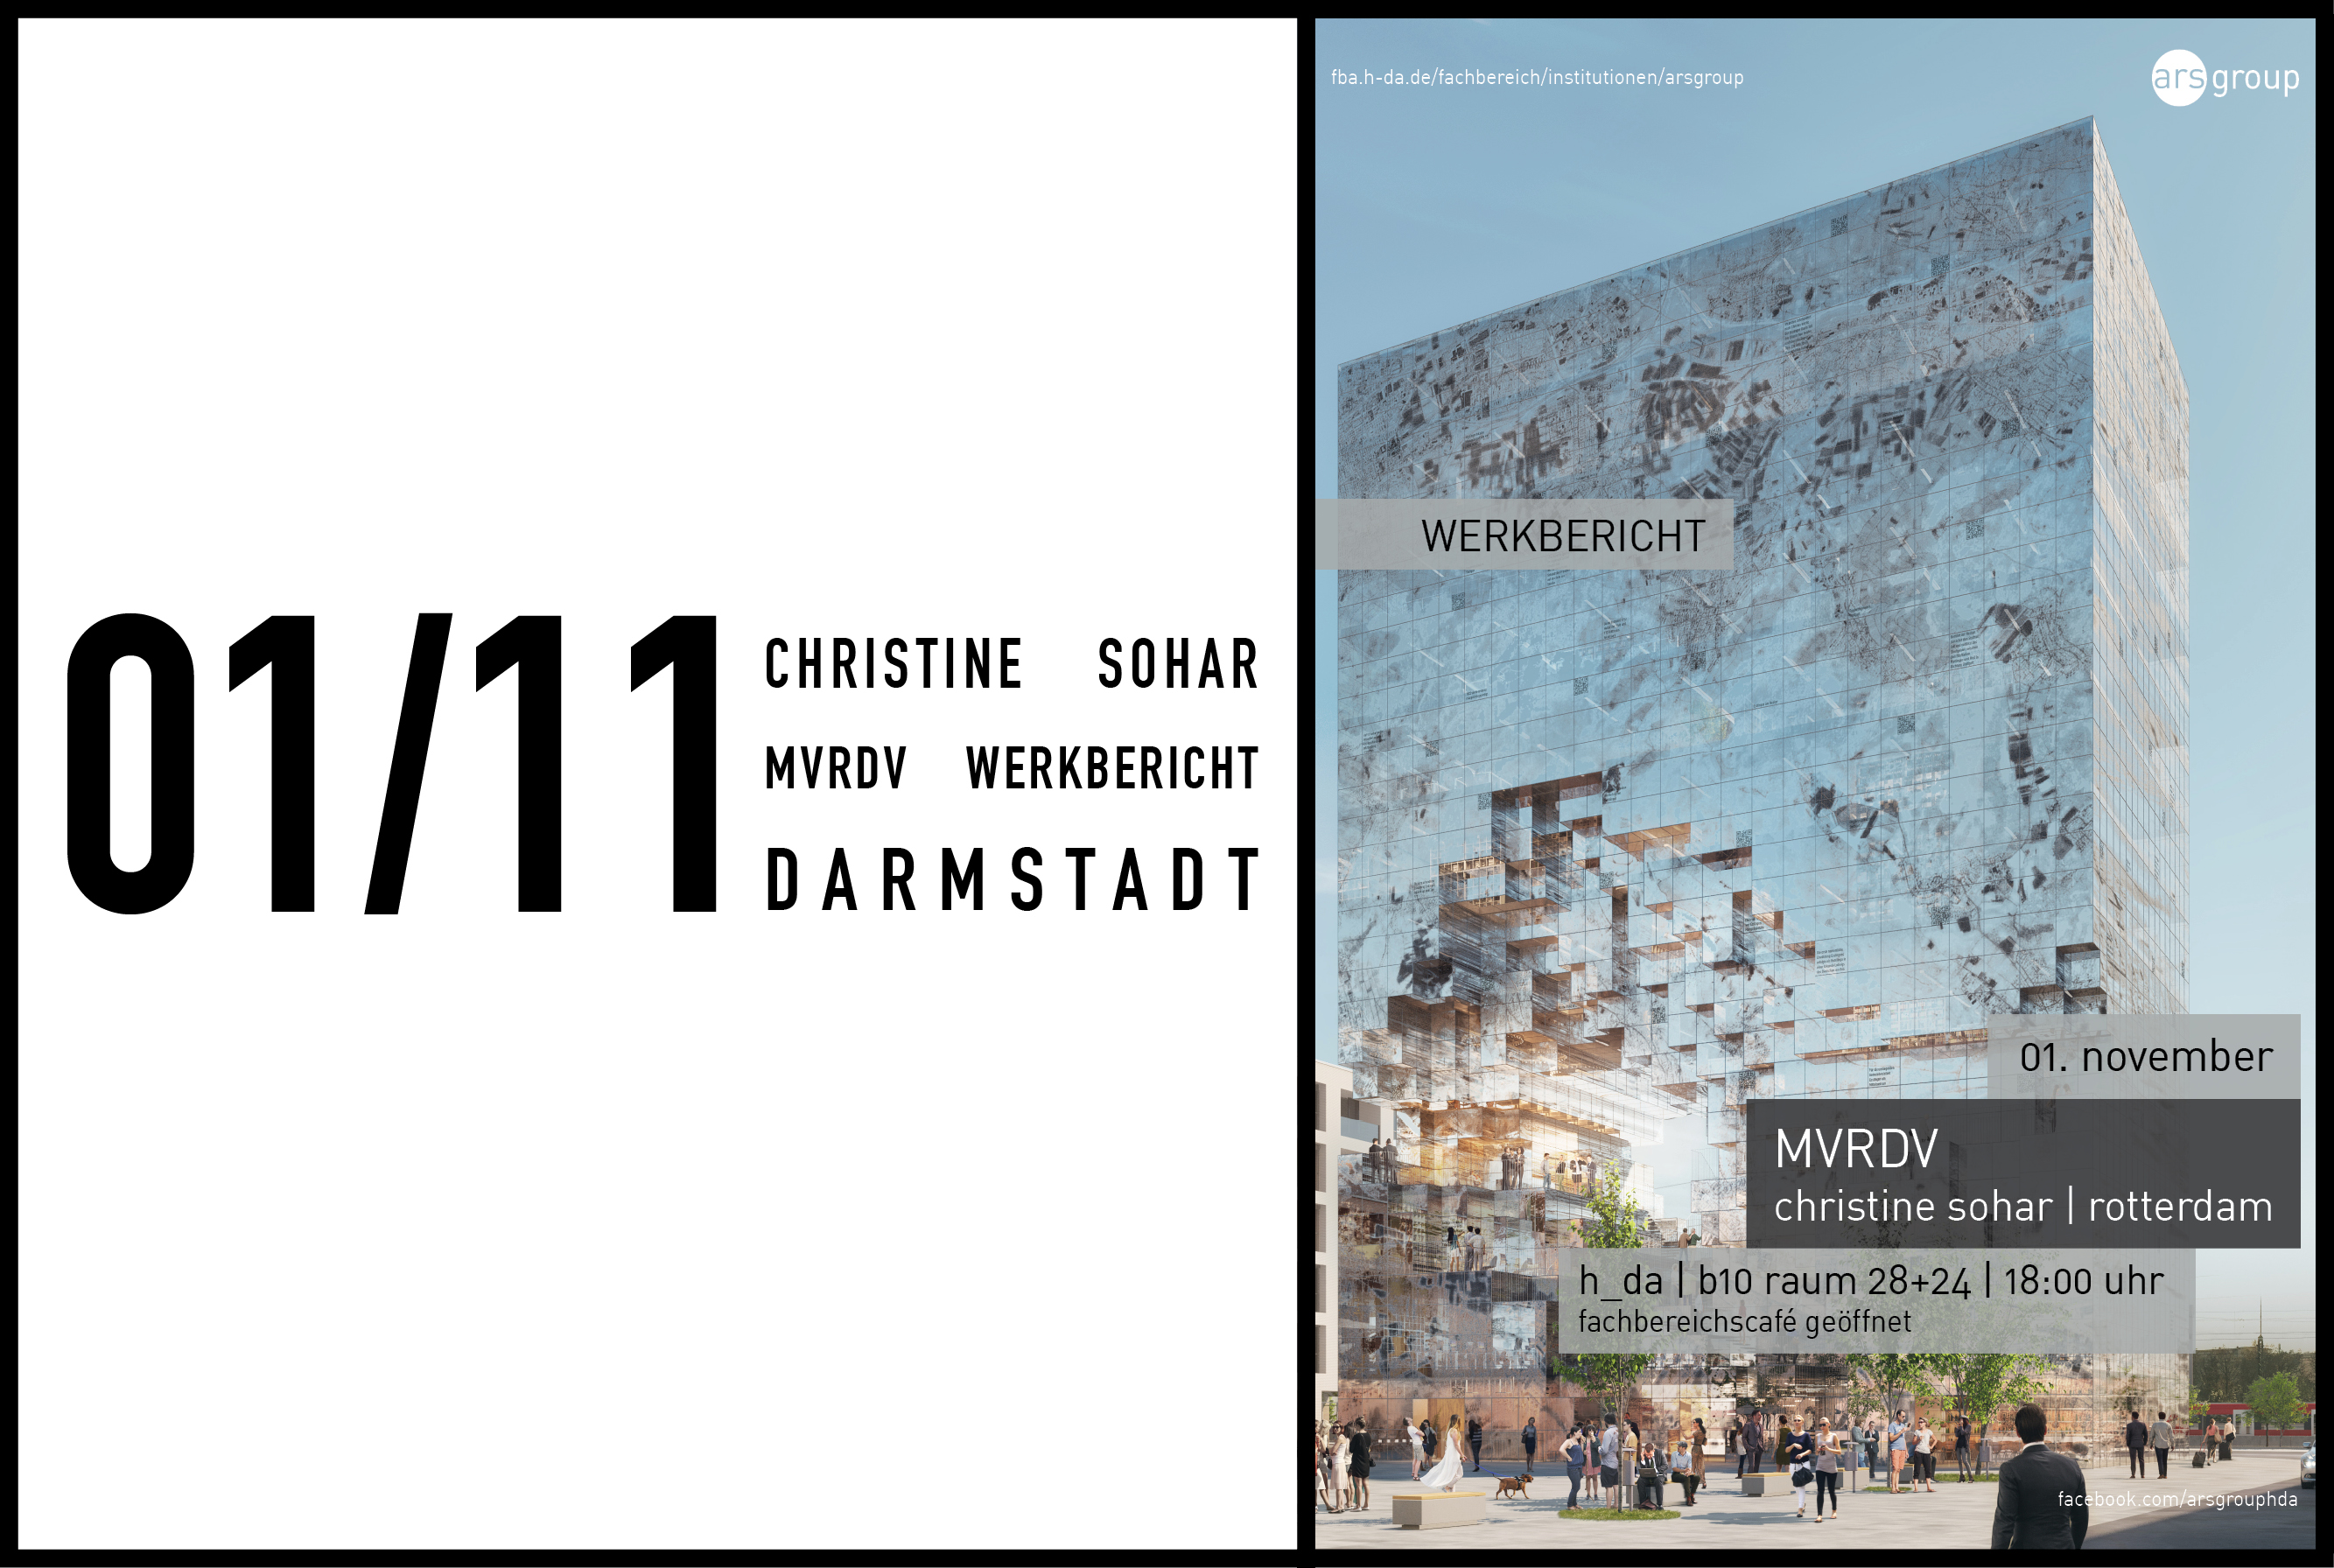 Christine Sohar to speak at Darmstadt School of Architecture